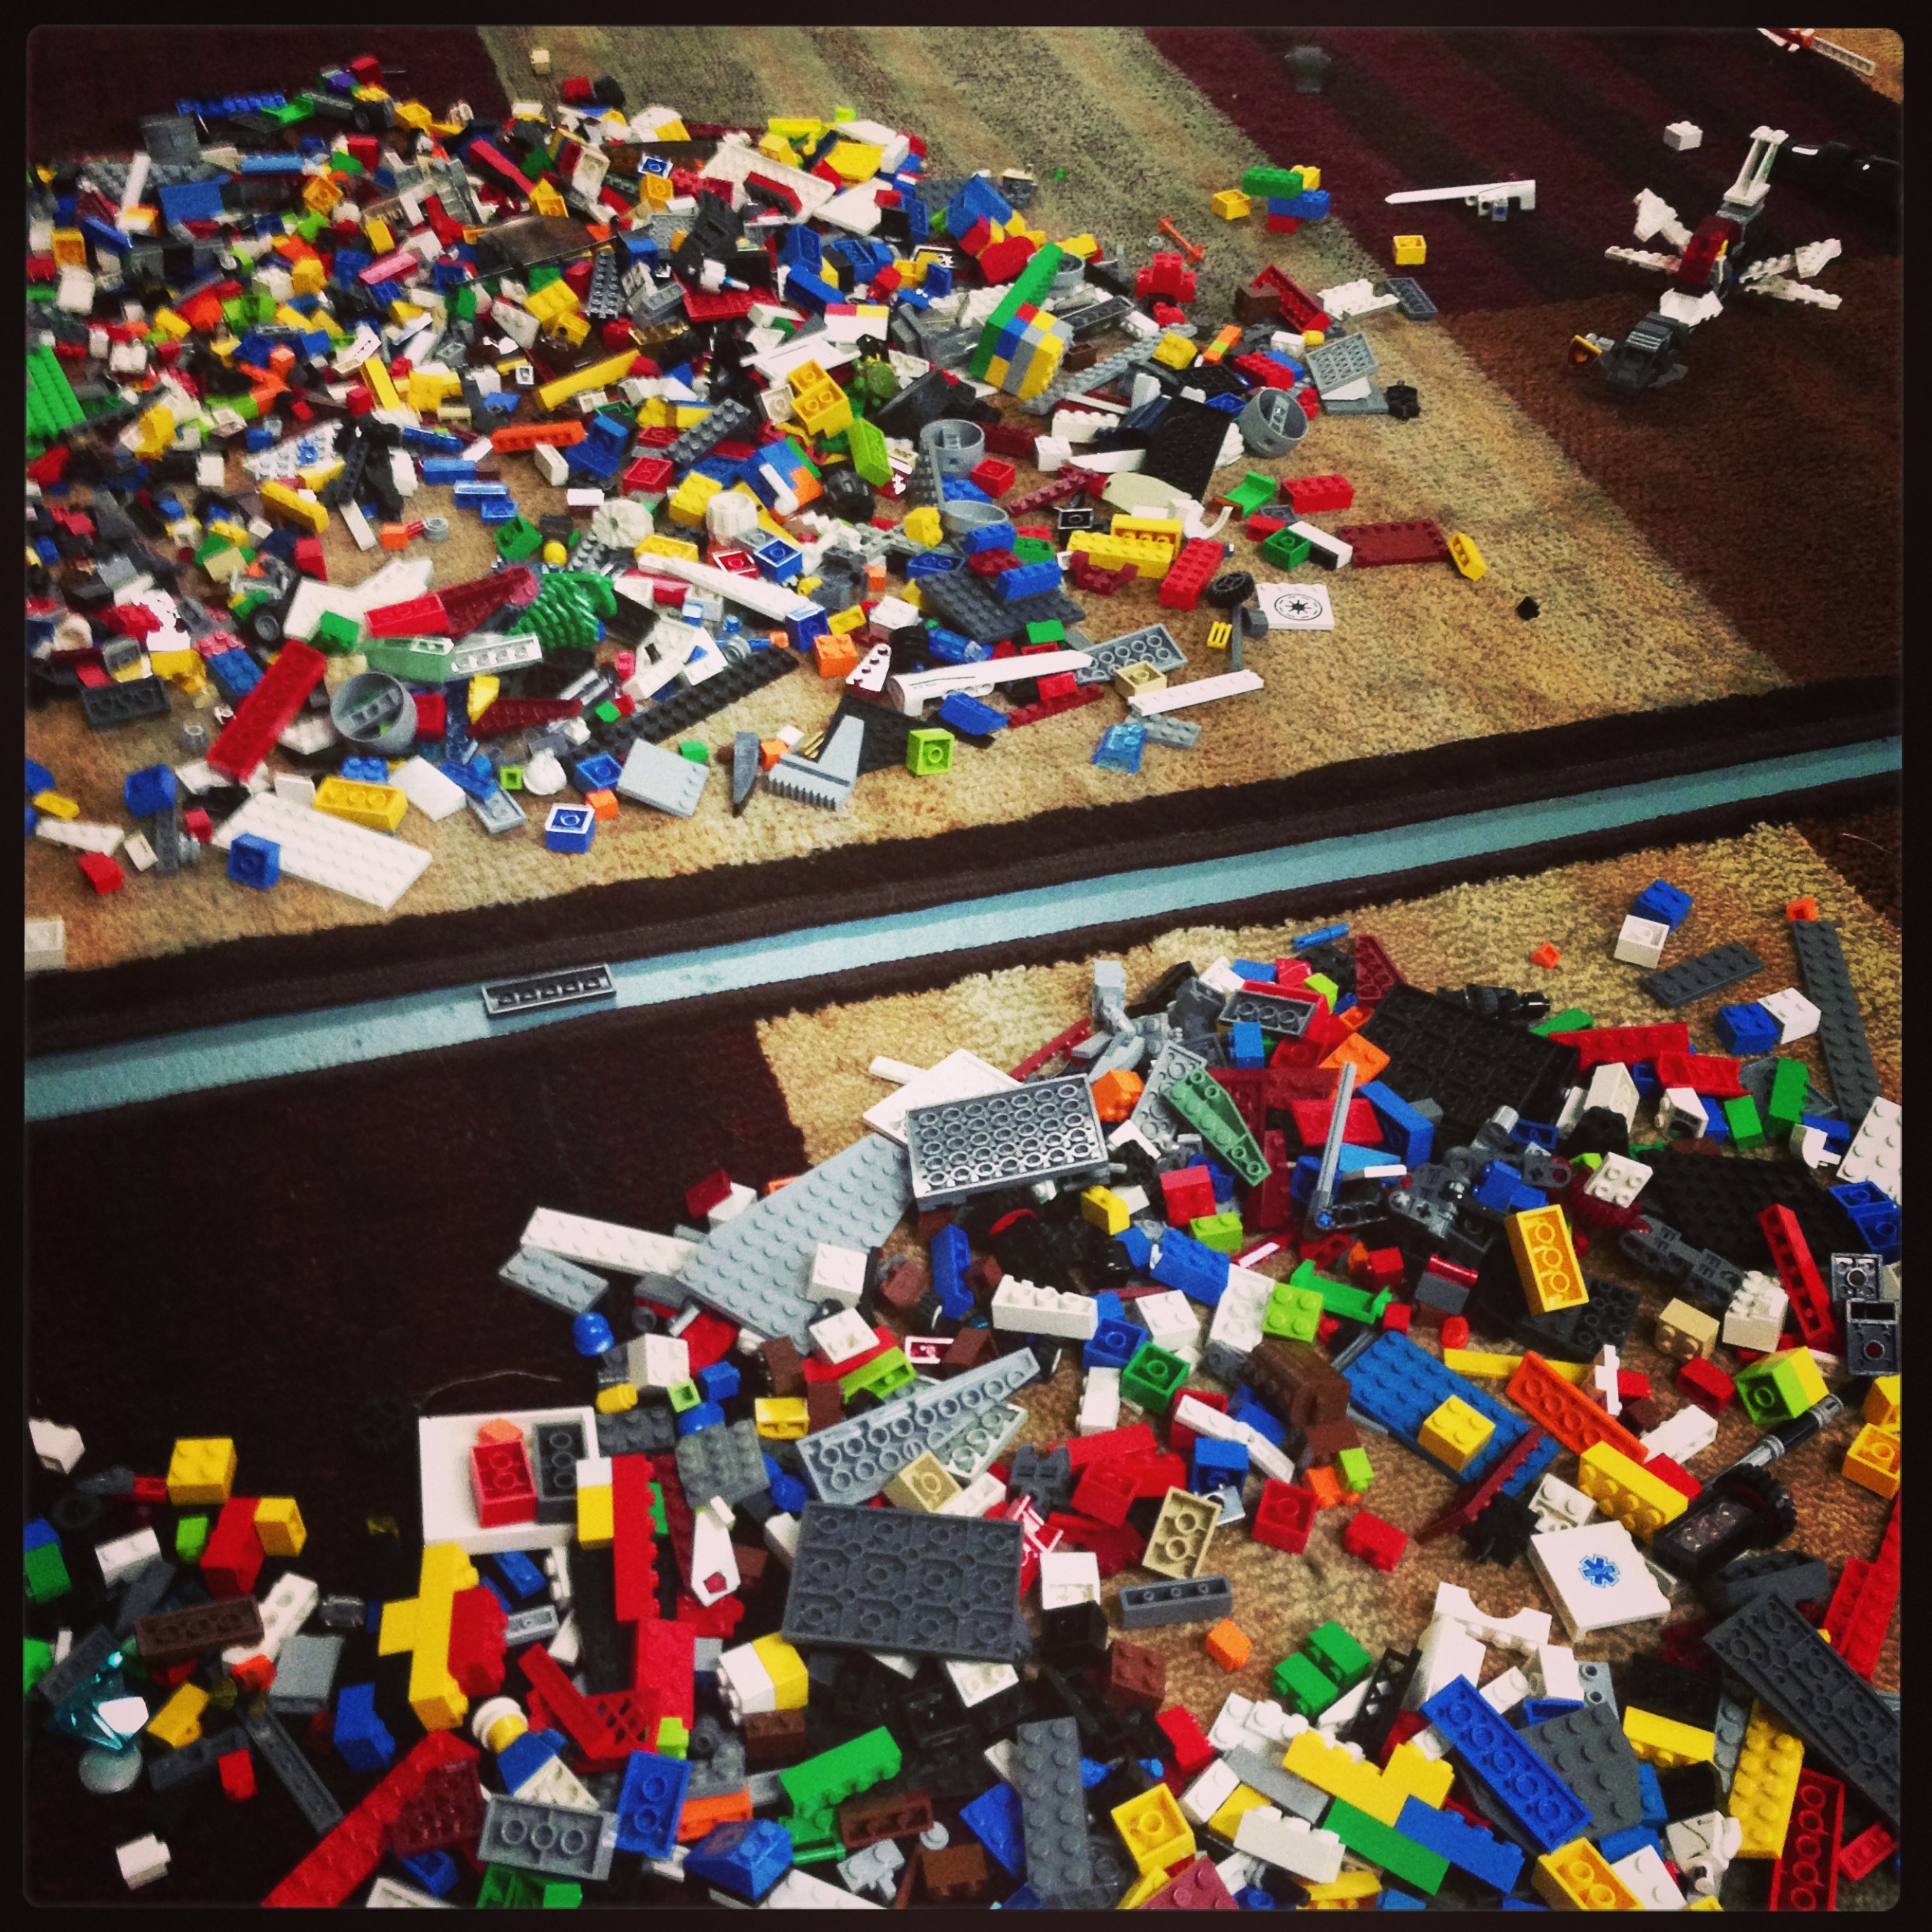 When in doubt, Lego.